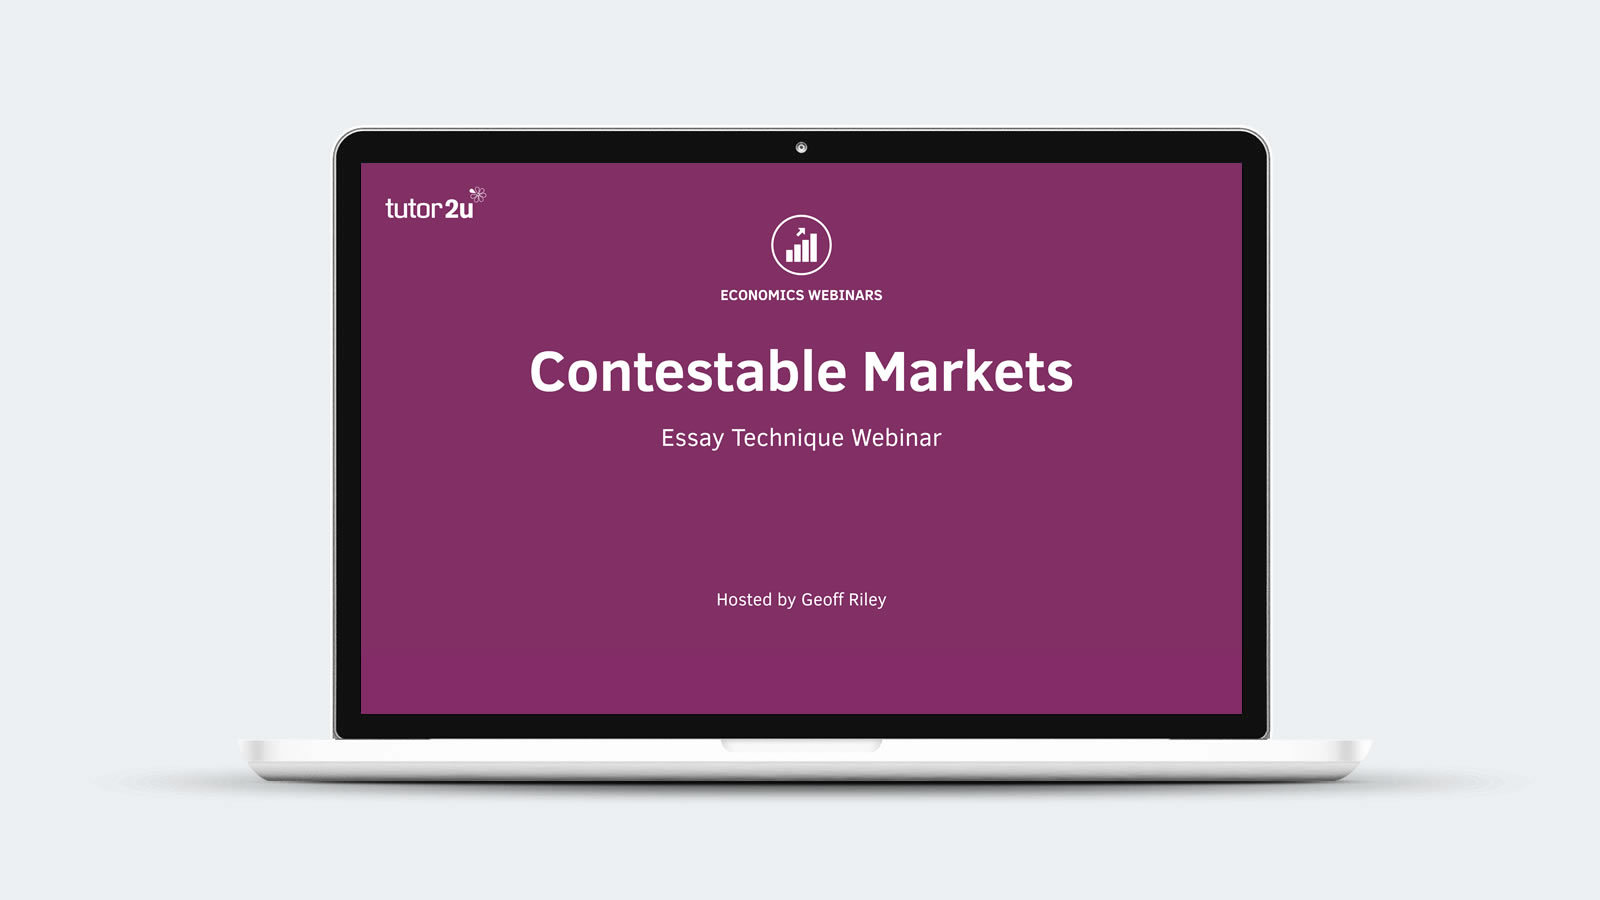 explore economics essential economics essay technique webinar contestable markets